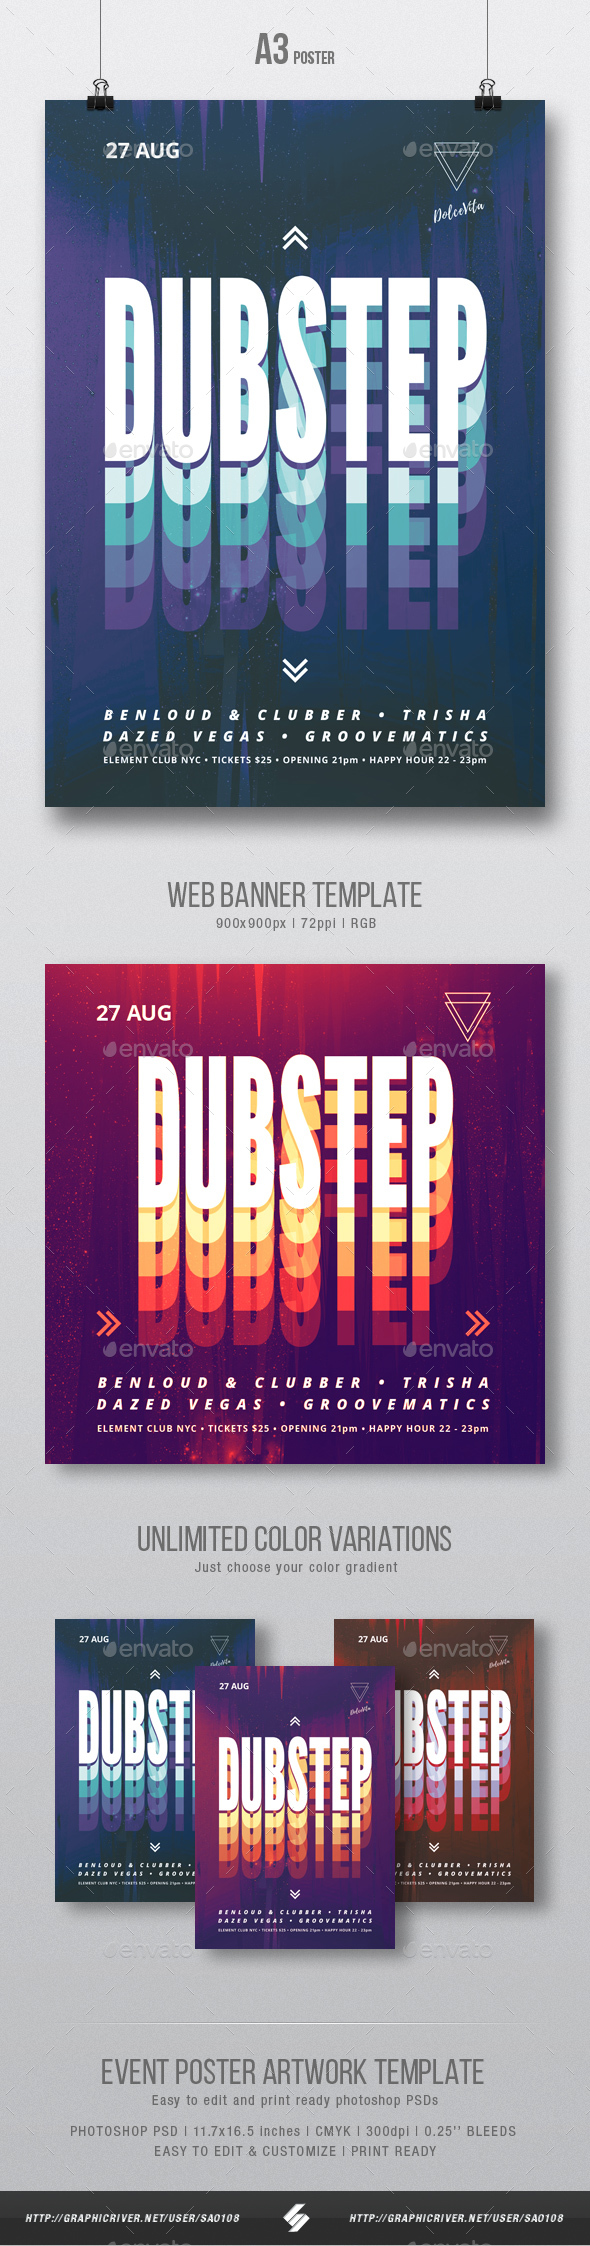 Dubstep Party Flyer / Poster Artwork Template A3 - Clubs & Parties Events